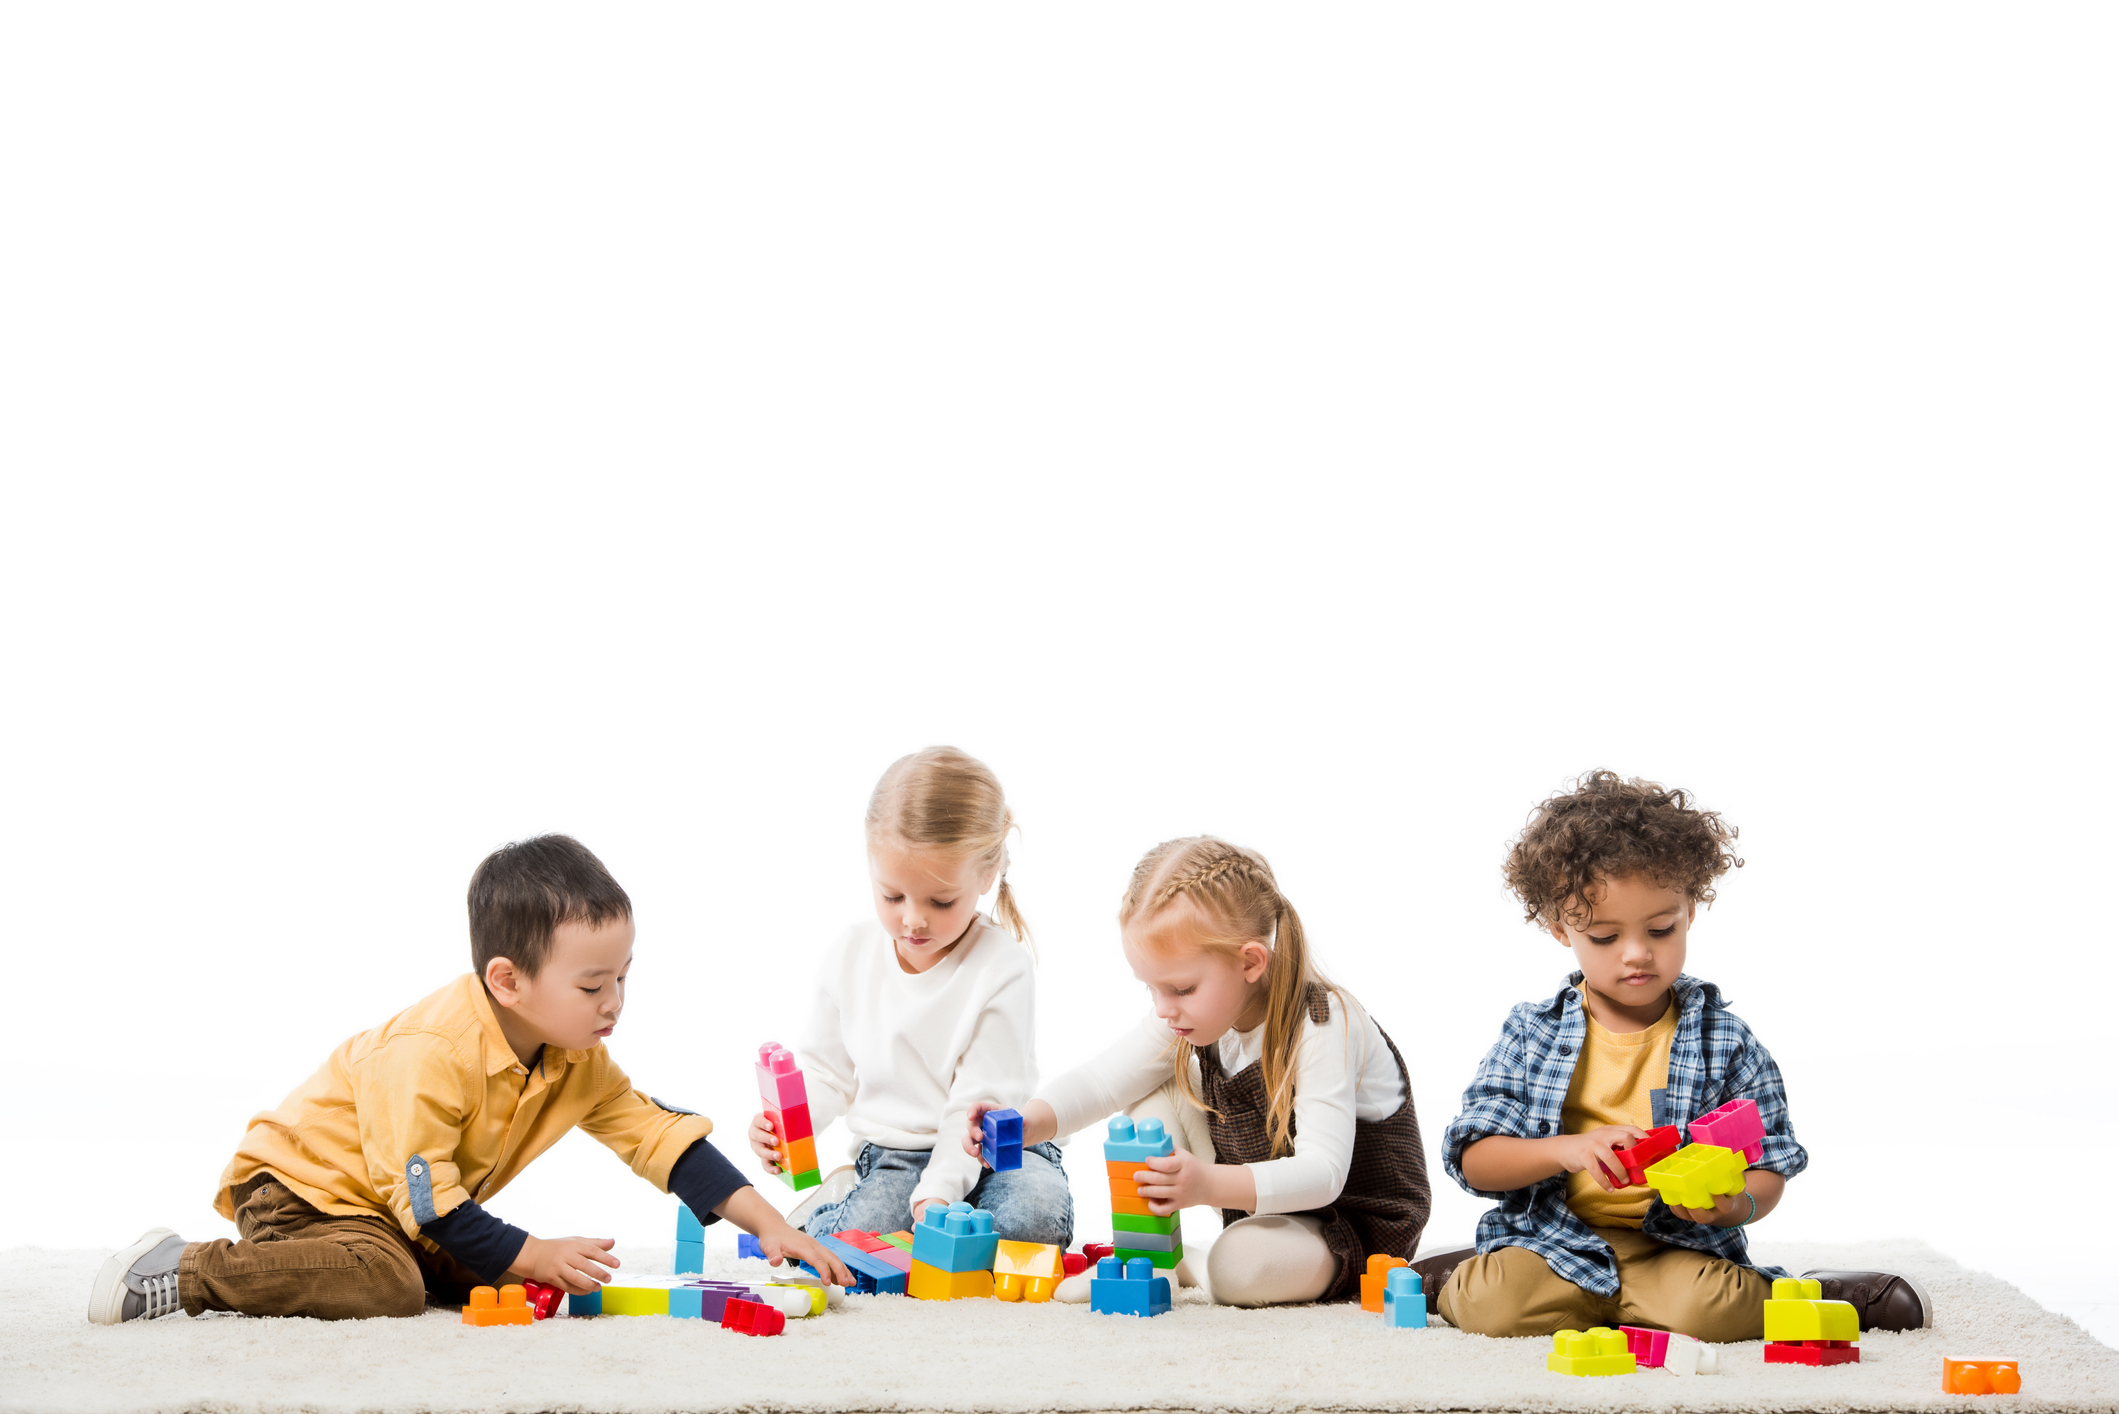 Children playing with wooden blocks